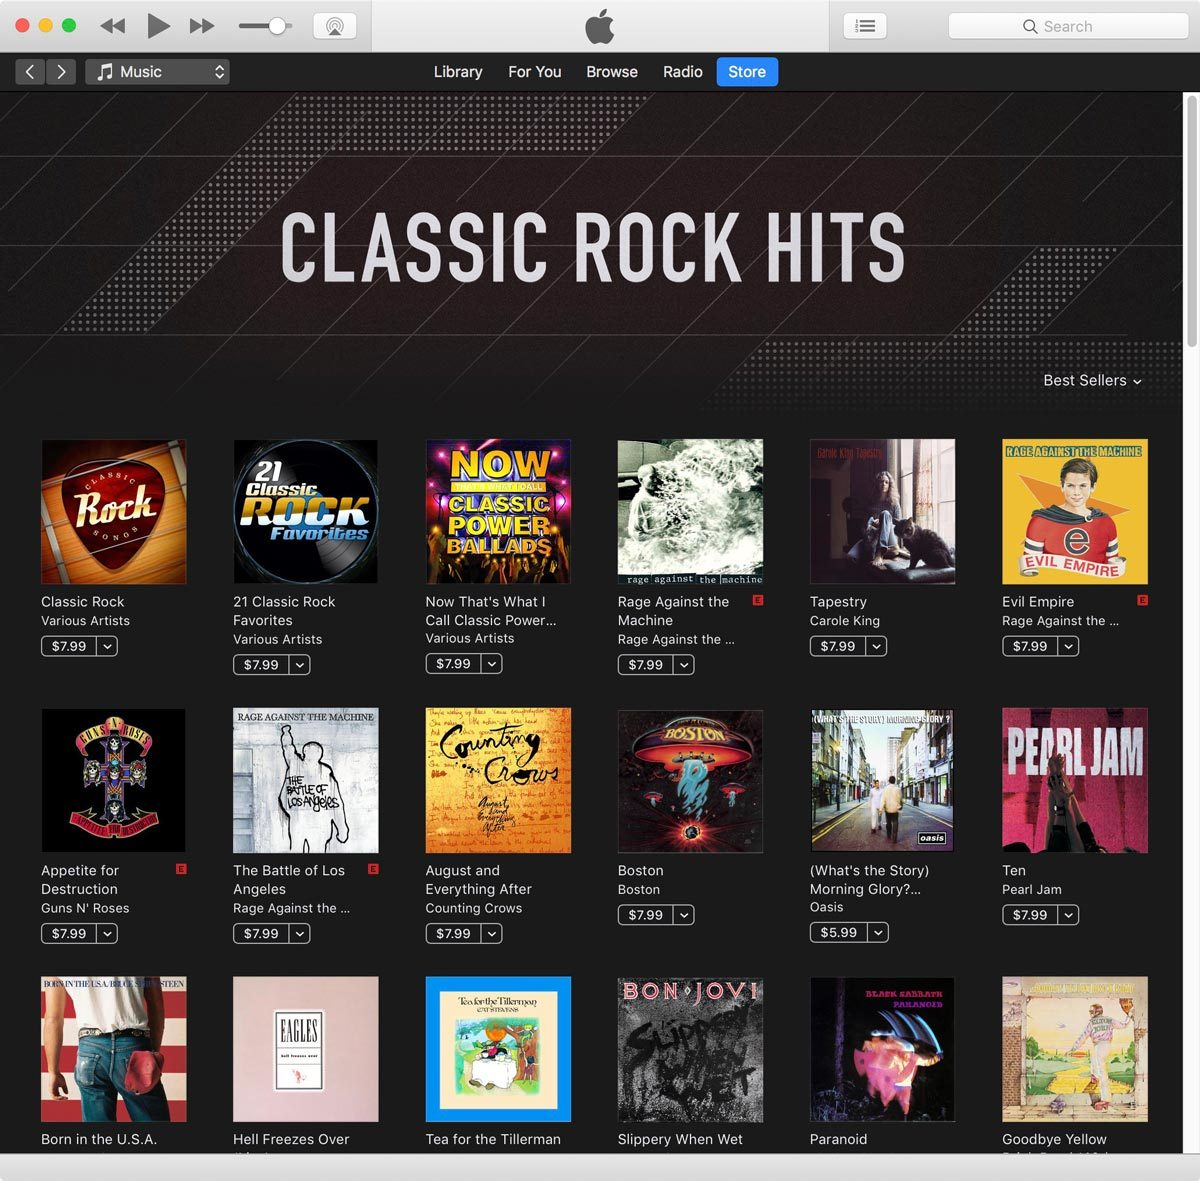 iTunes Store Offers 93 Classic Rock Albums at $7 99 - The